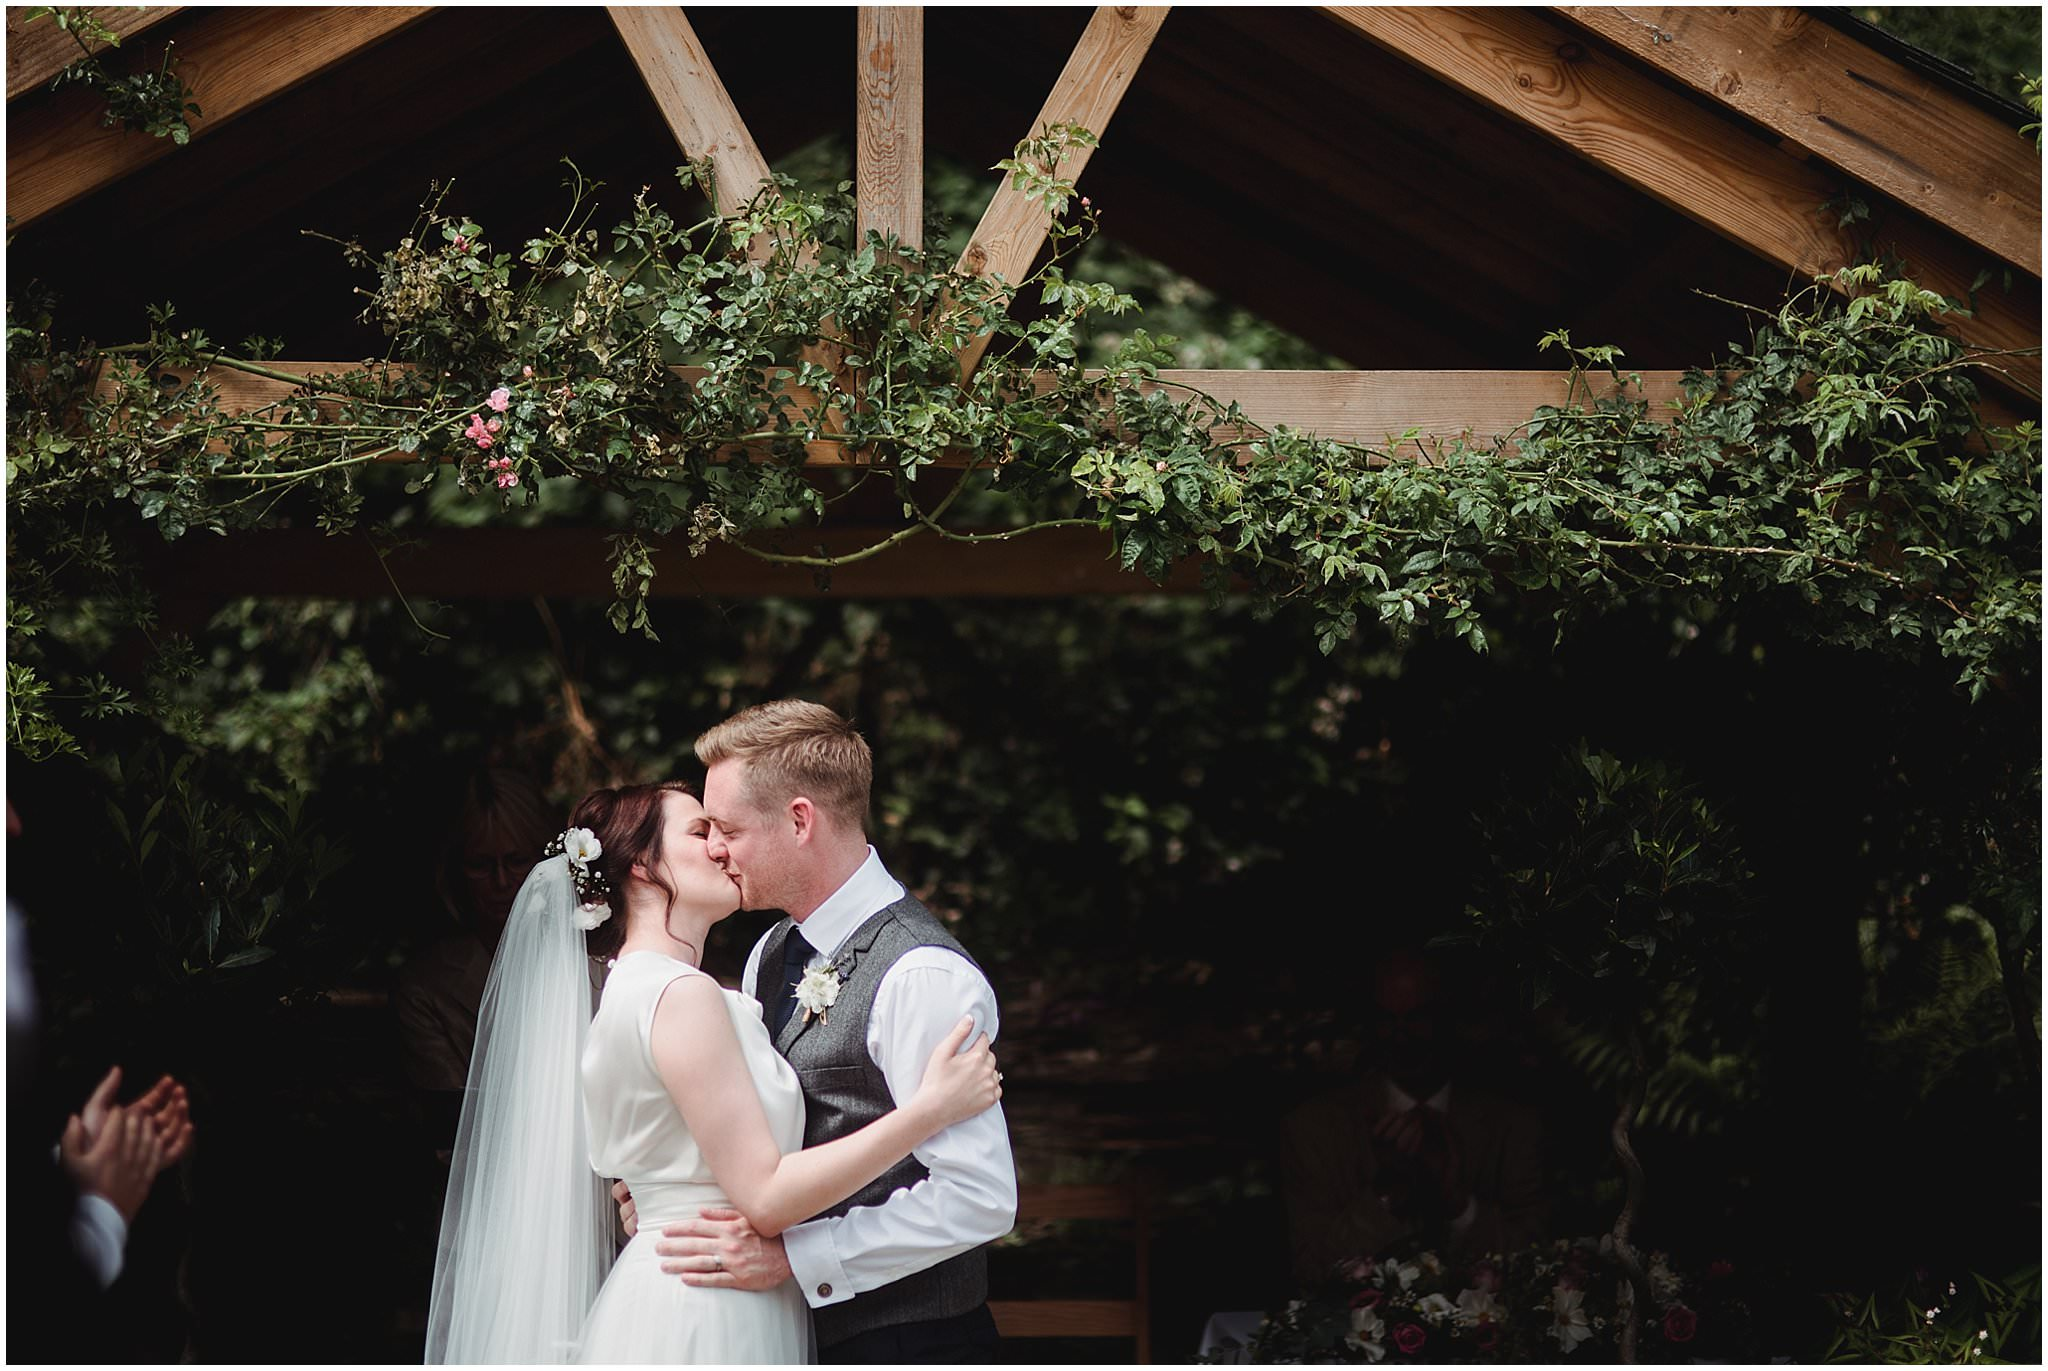 fay & tim wedding at ashley wood farm_0463